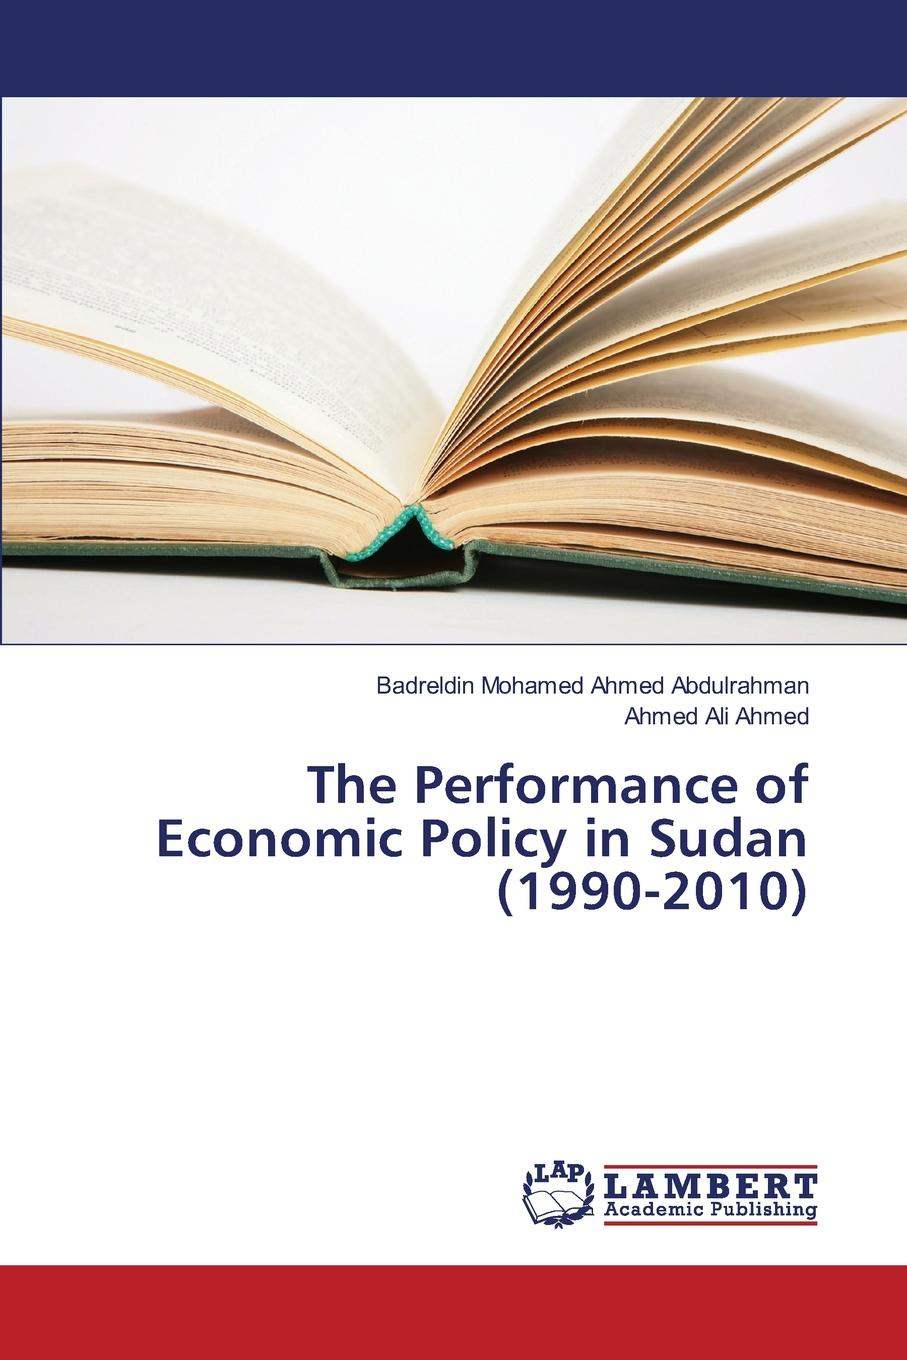 Abdulrahman Badreldin Mohamed Ahmed, Ahmed Ahmed Ali The Performance of Economic Policy in Sudan (1990-2010) mahmoud ali ahmed multi tragedies novel